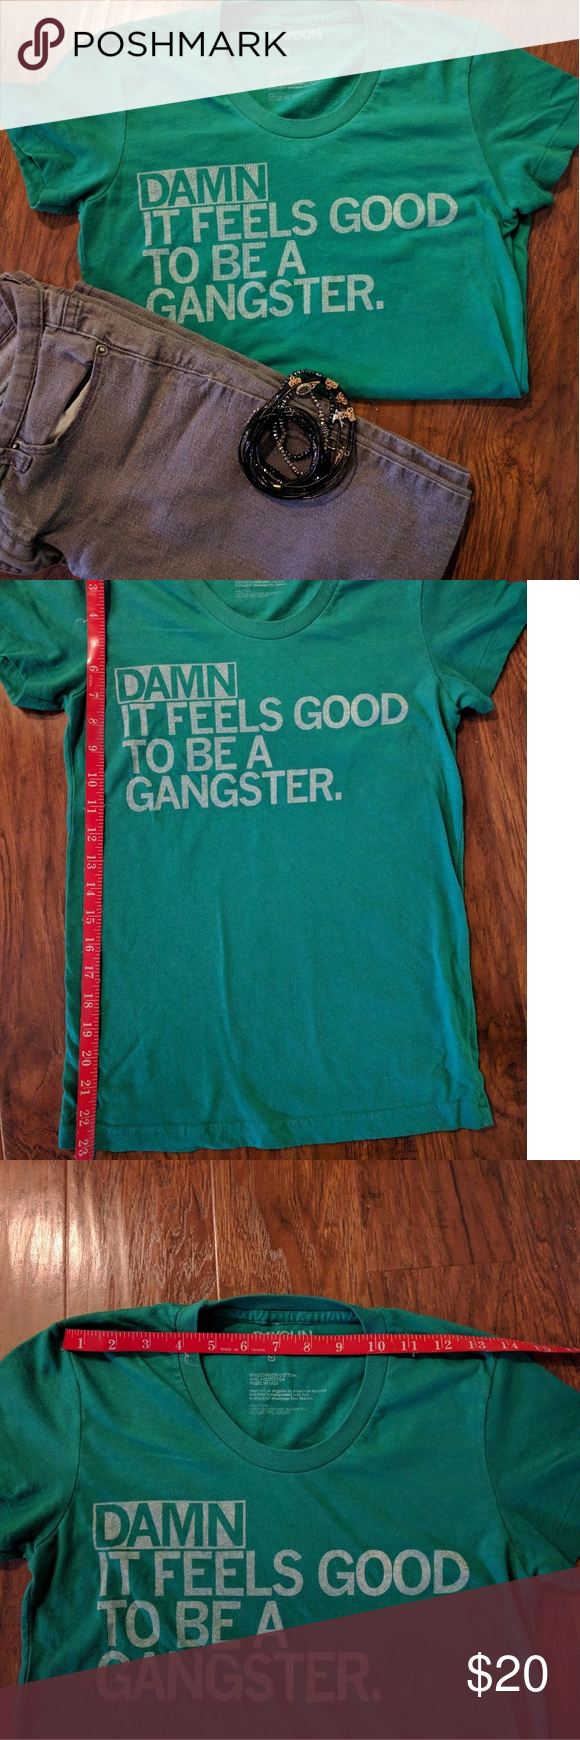 Small, green RAYGUN gangster quote t shirt 😍 Raygun